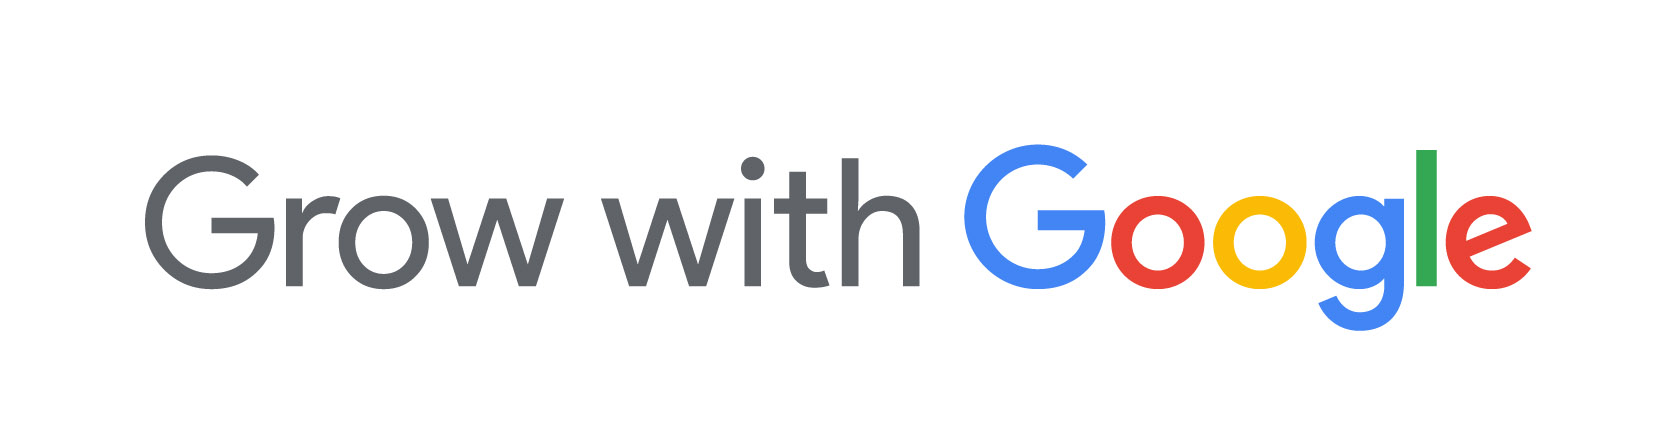 Grow with Google logo